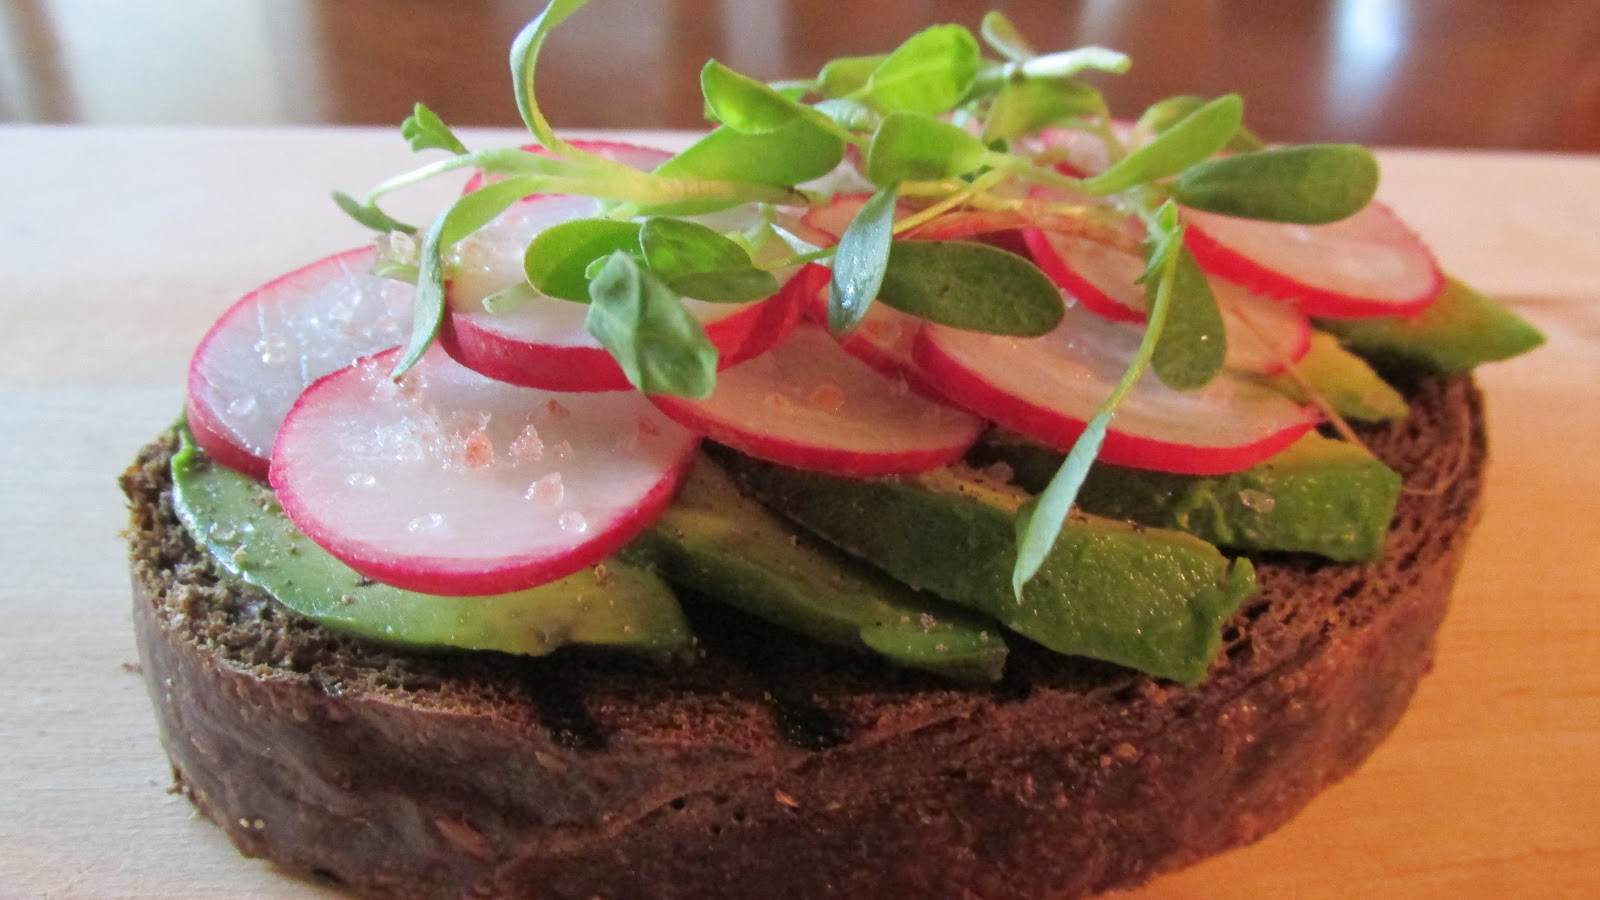 ... : Spring Radish and Avocado Open-Faced Sandwich on Pumpernickel